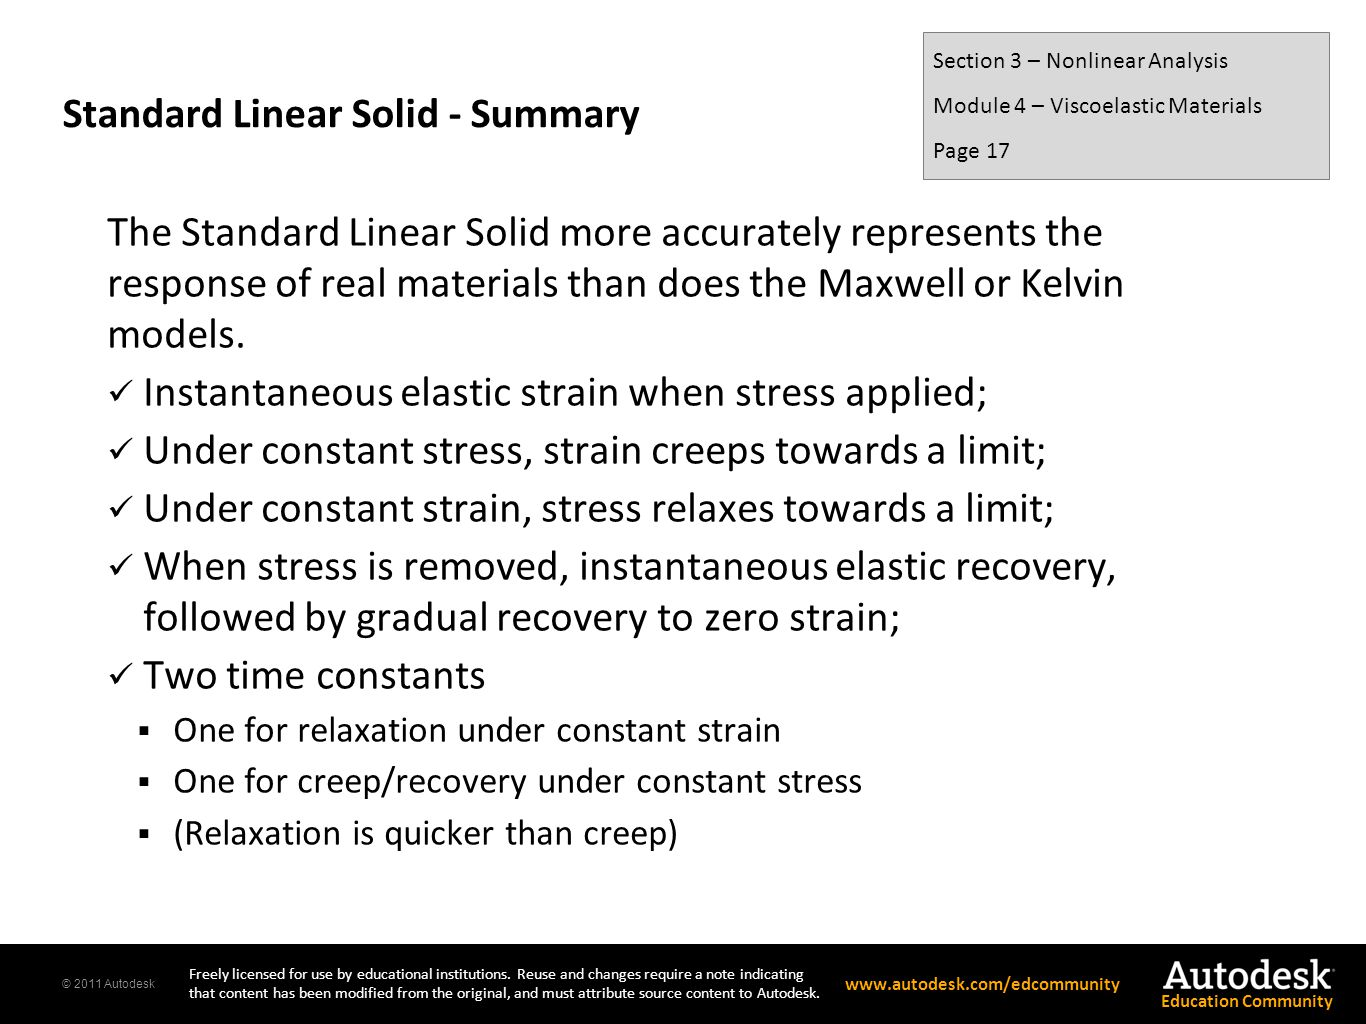 Standard Linear Solid - Summary